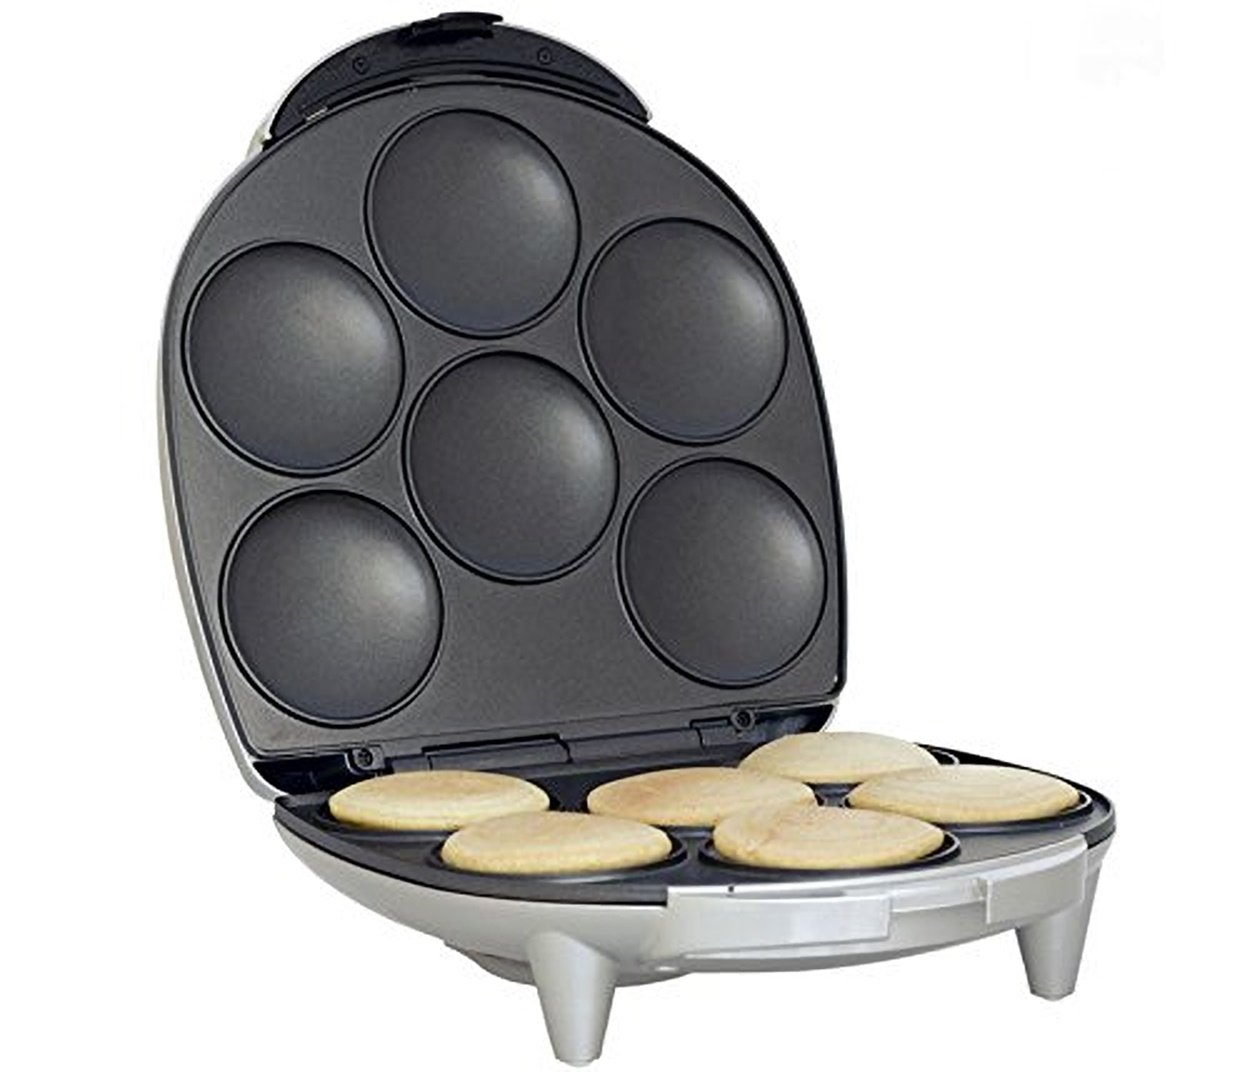 Electric Arepa Grill Maker With Nonstick Surface Dough Press 6 Authentic Arepas in Minutes 1200 Watts